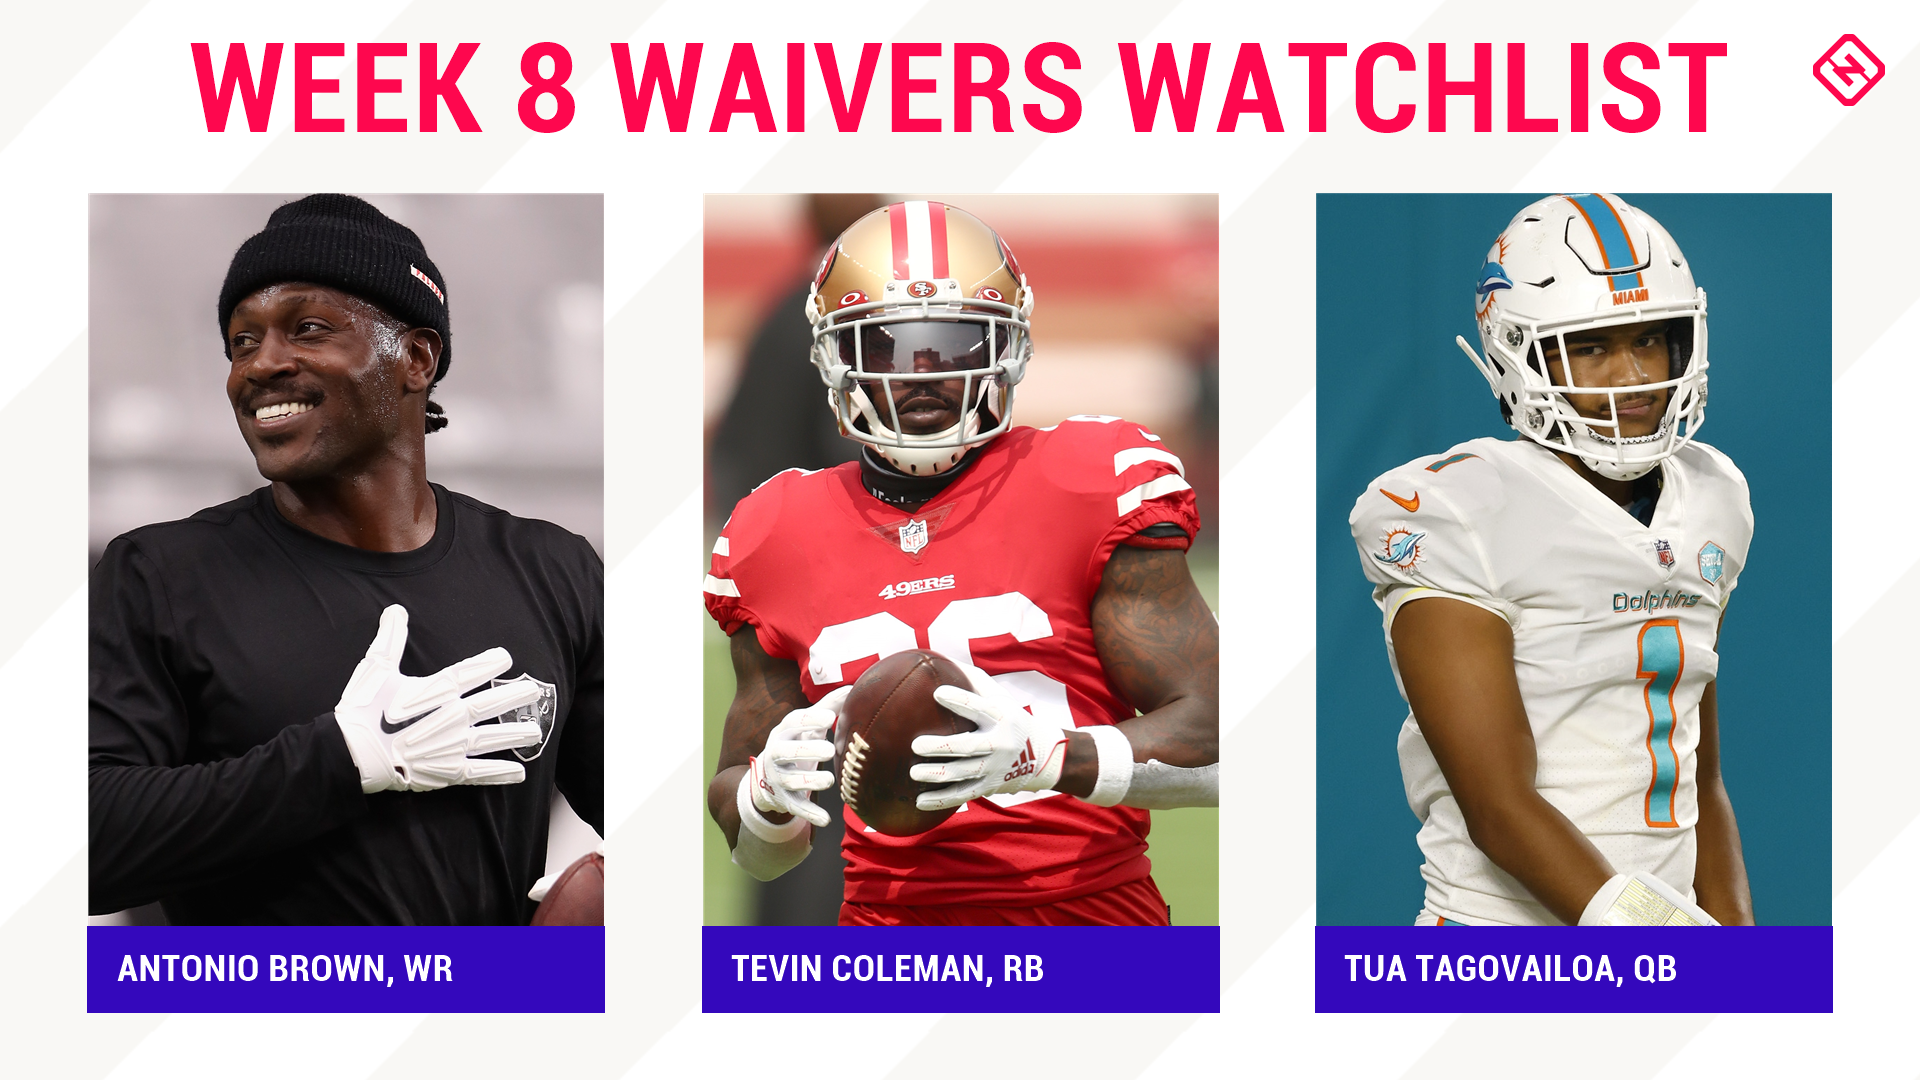 Fantasy Football Waiver Wire Watchlist for Week 8